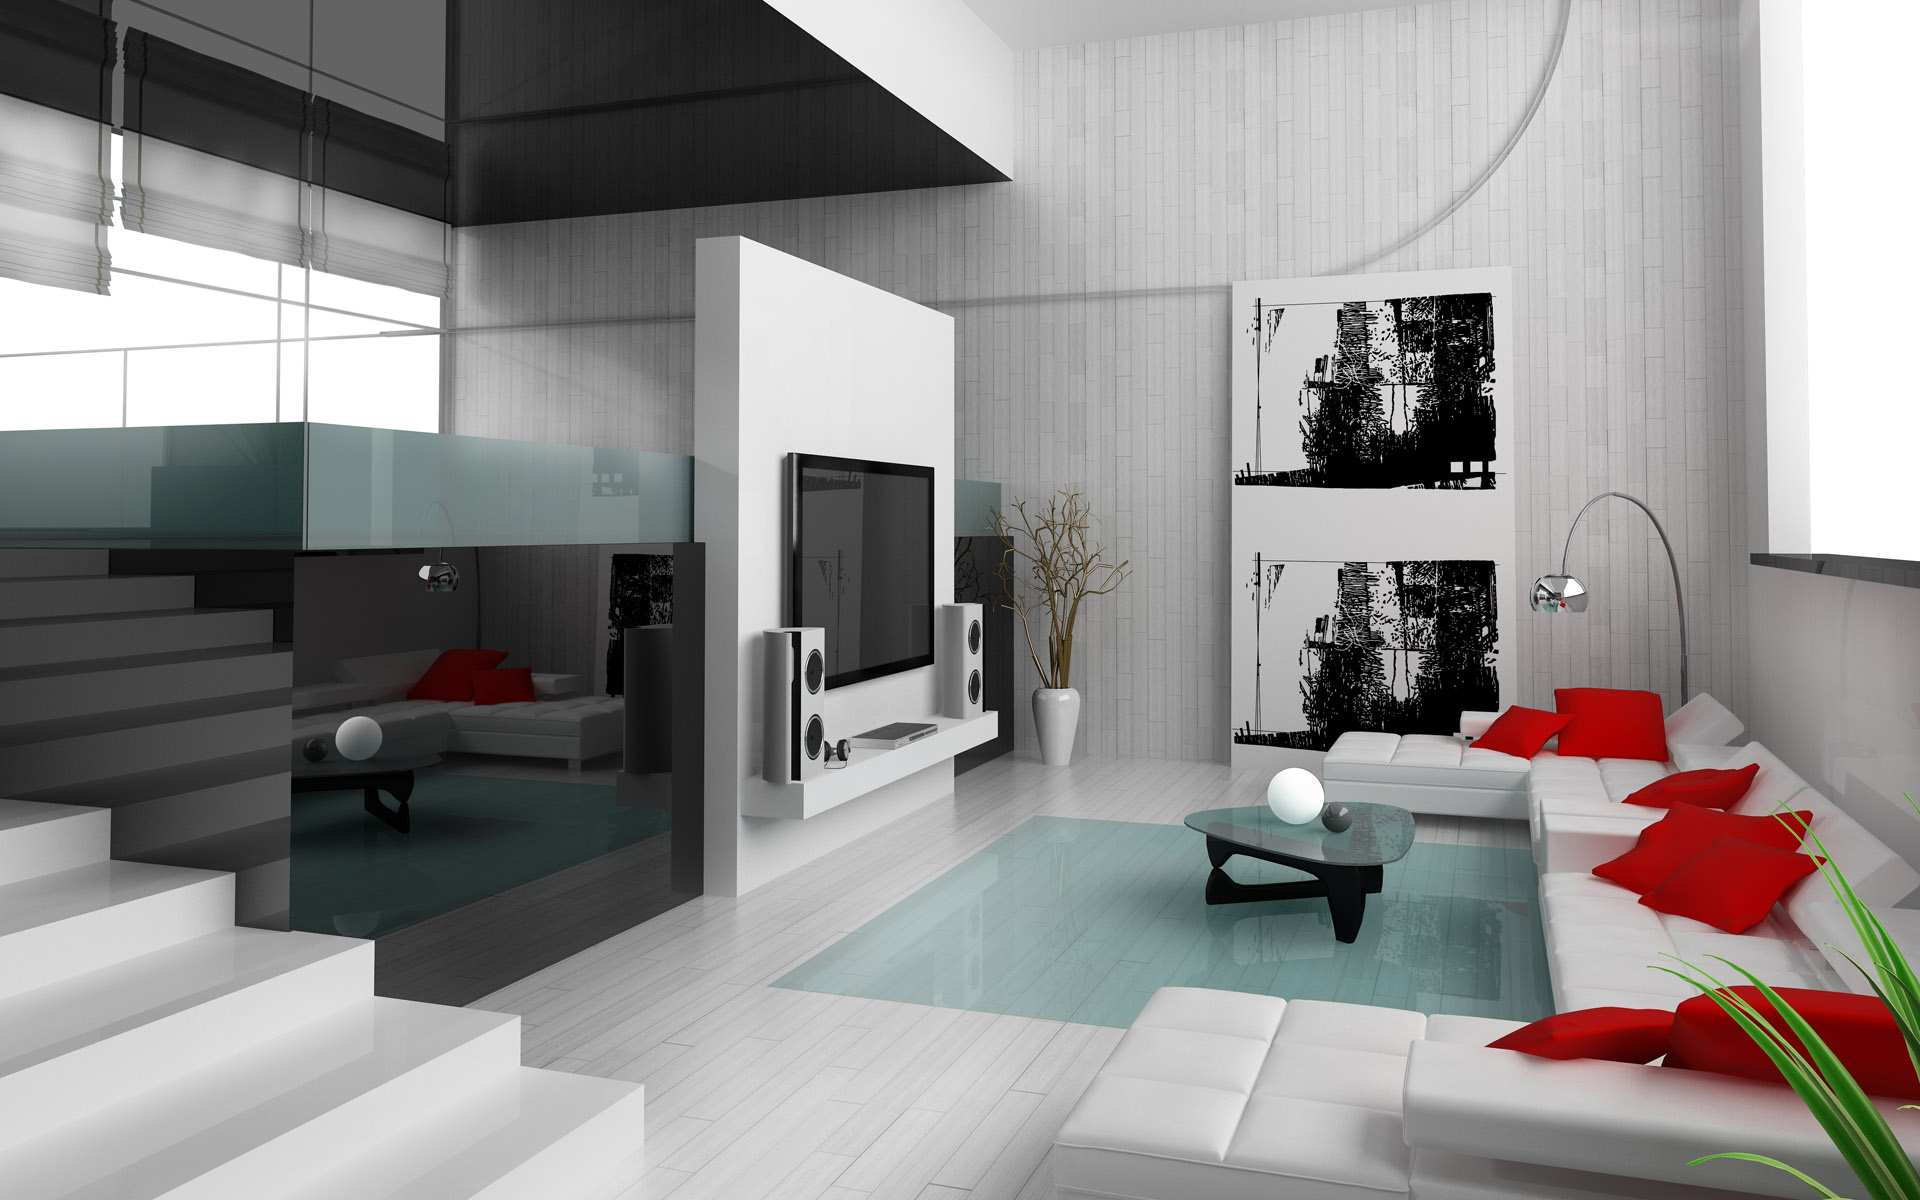 Home Living Room Ideas 23 Modern Interior Design Ideas For The Perfect Home